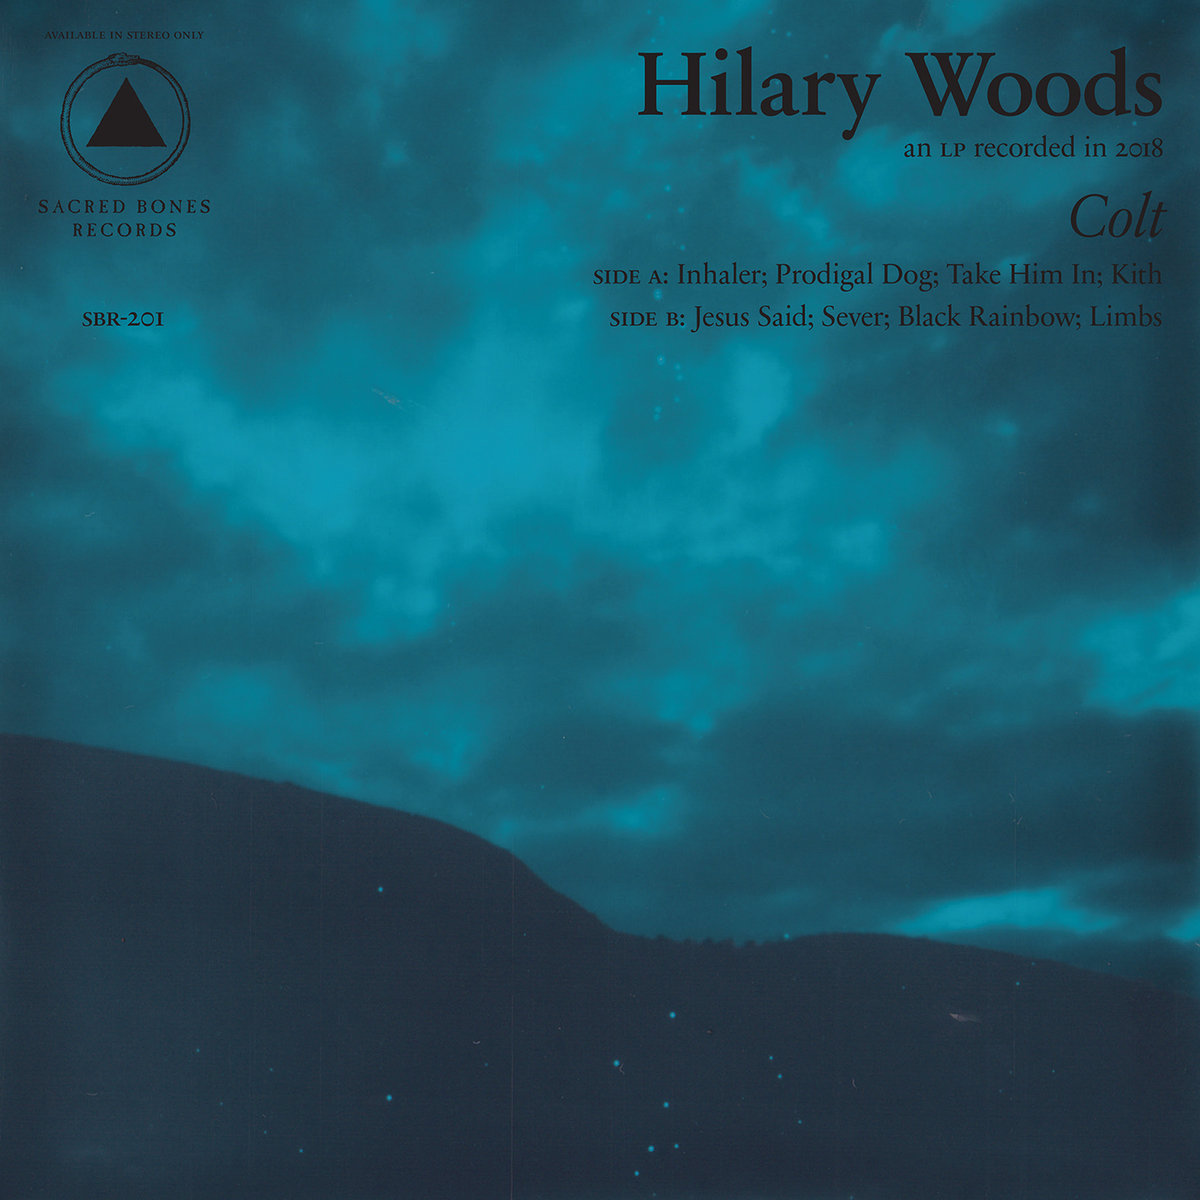 'Colt' by Hilary Woods album review by Andy Resto for Northern Transmissions